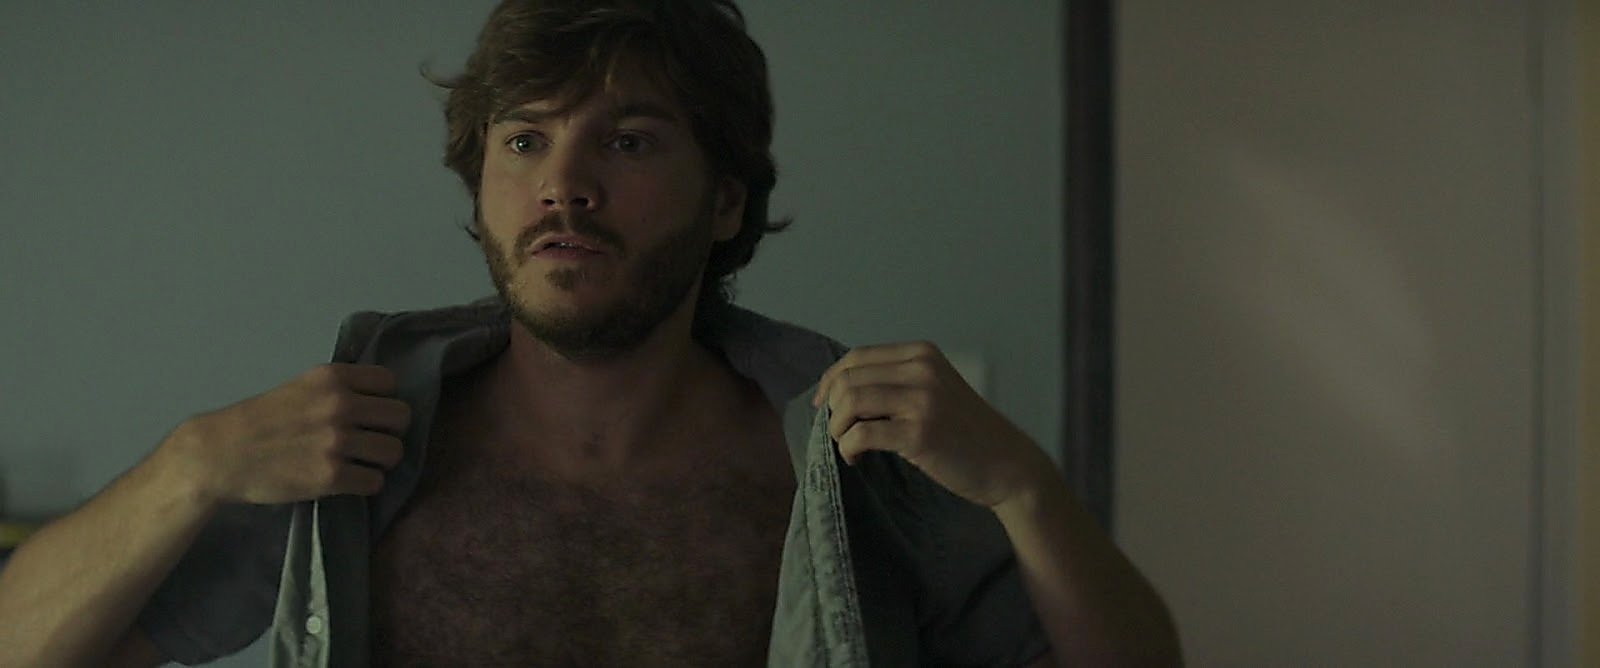 Emile Hirsch sexy shirtless scene March 25, 2017, 1pm